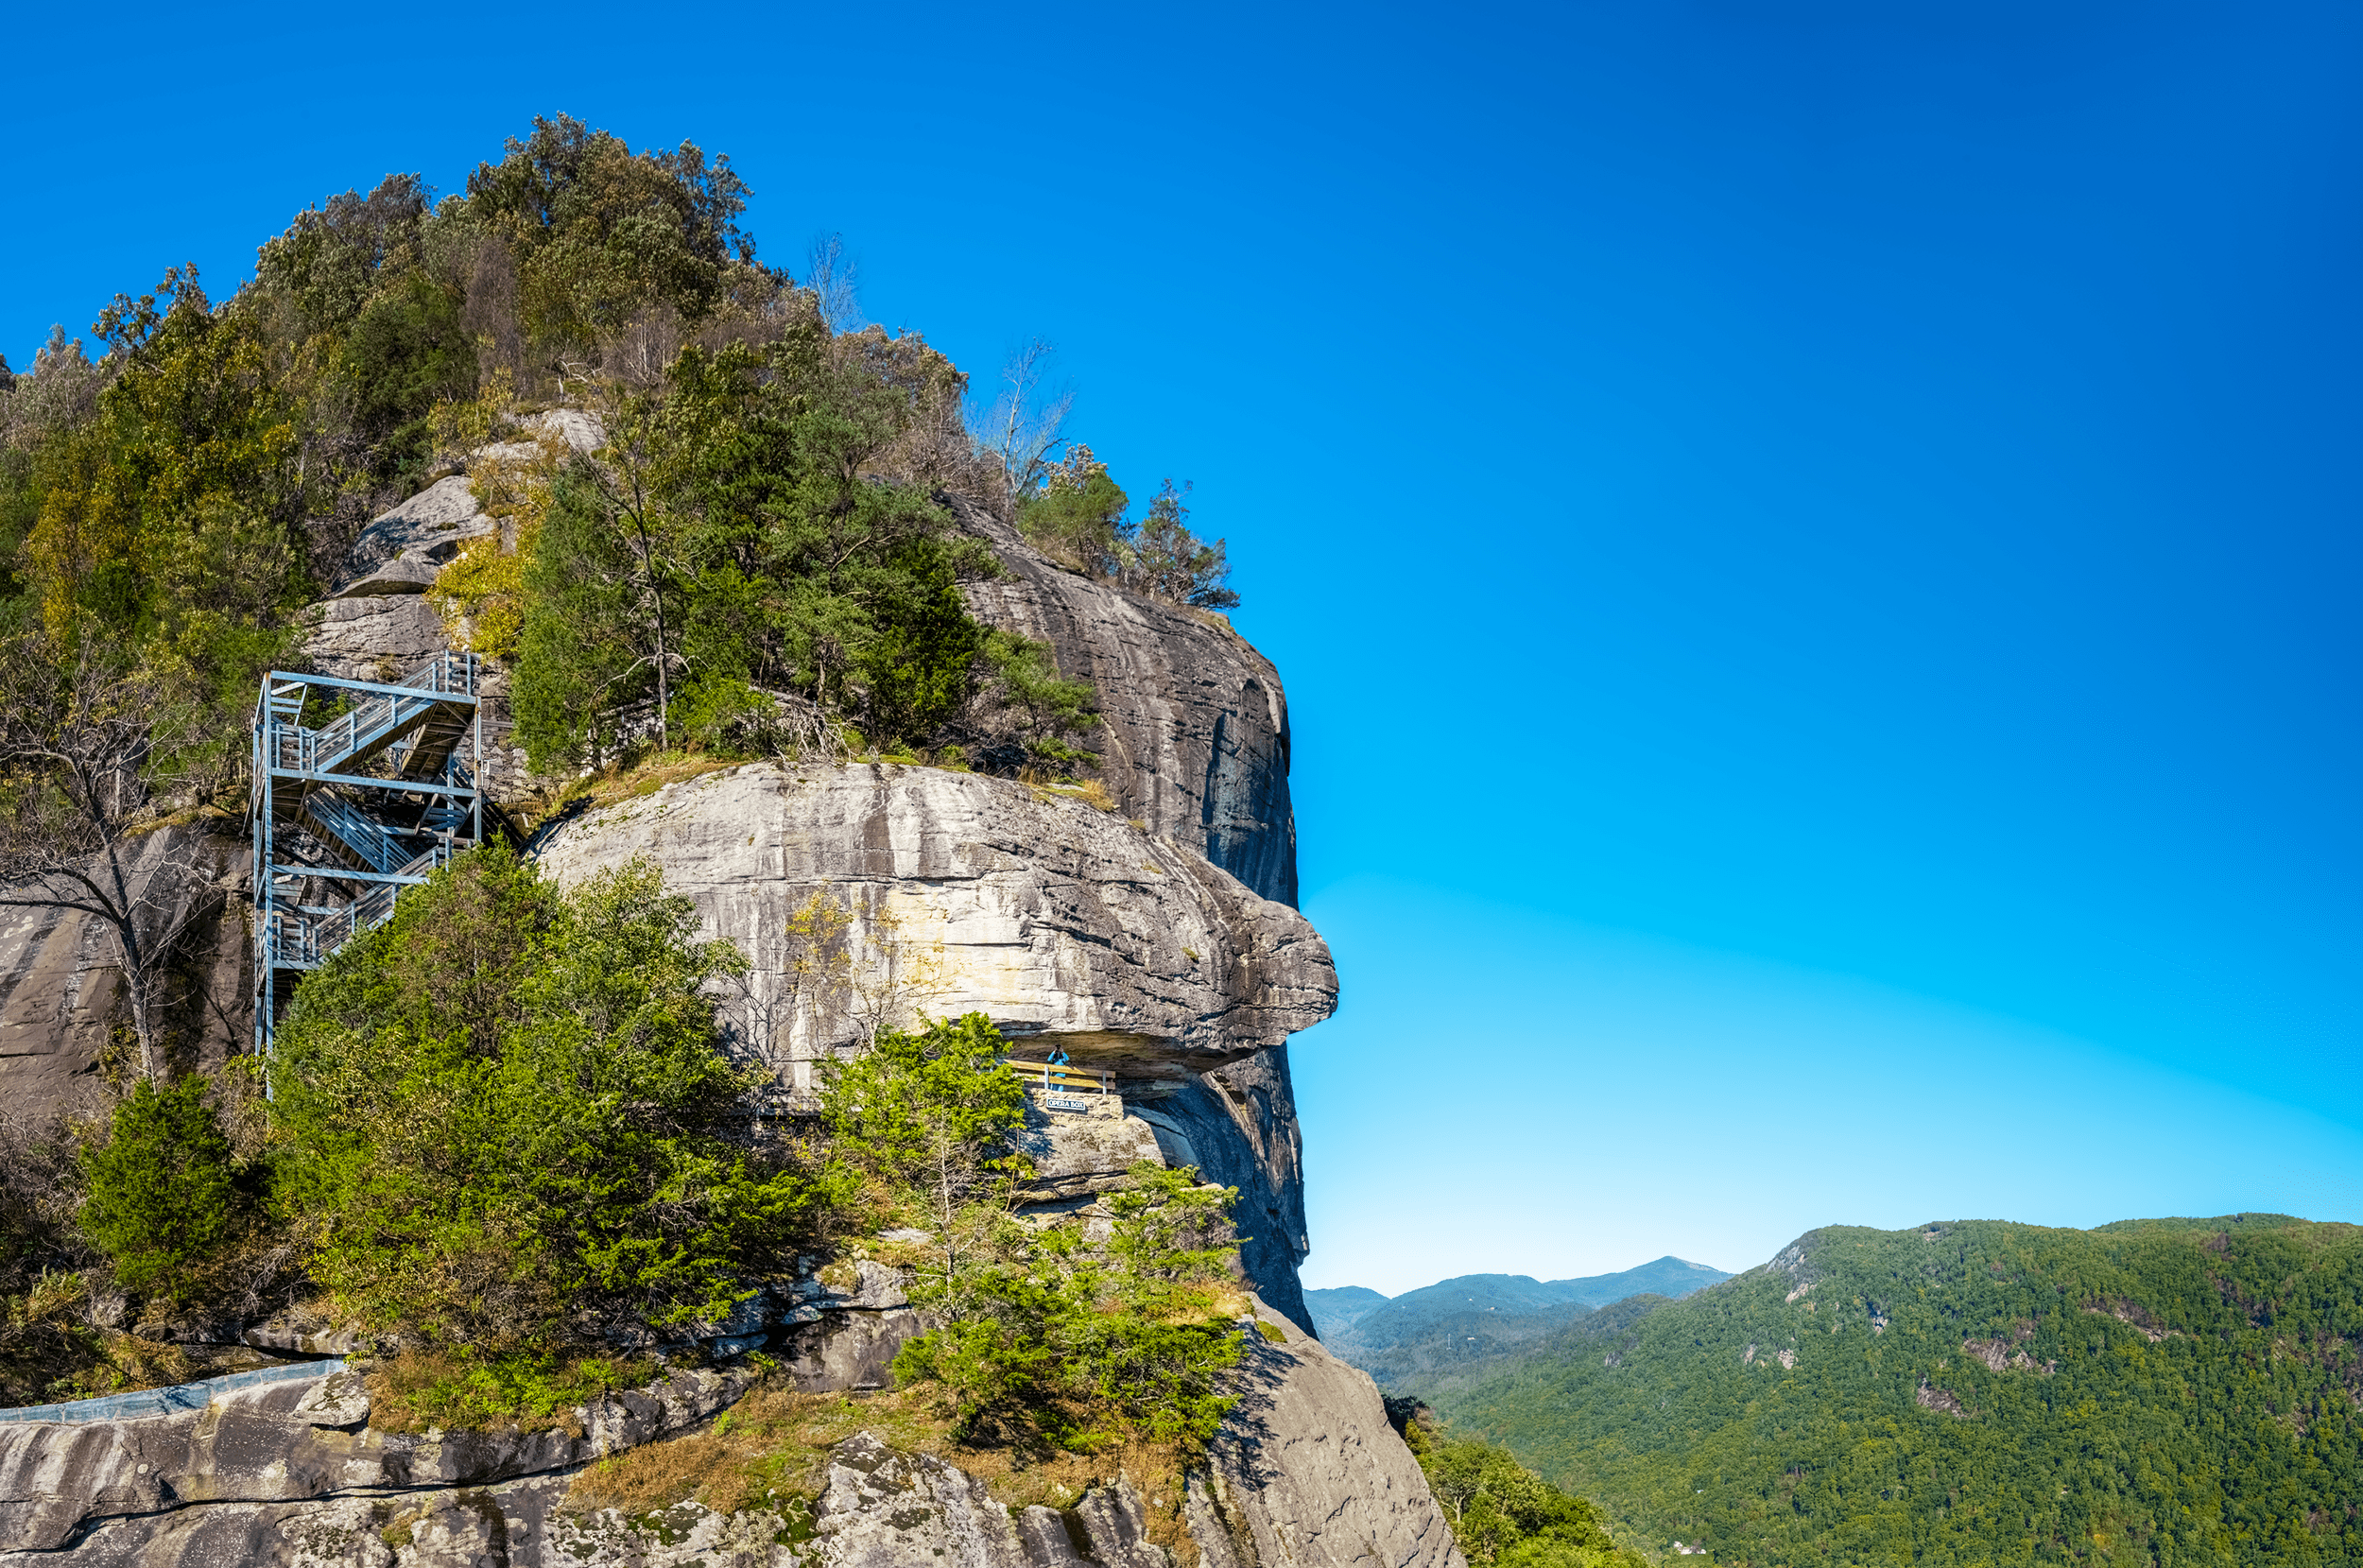 Behind  Chimney Rock  is the famous  Opera Box  covered by an imposing rock overhang. The staircase to the left is part of the  Exclamation Point Trail , which connects to the  Skyline Trail .